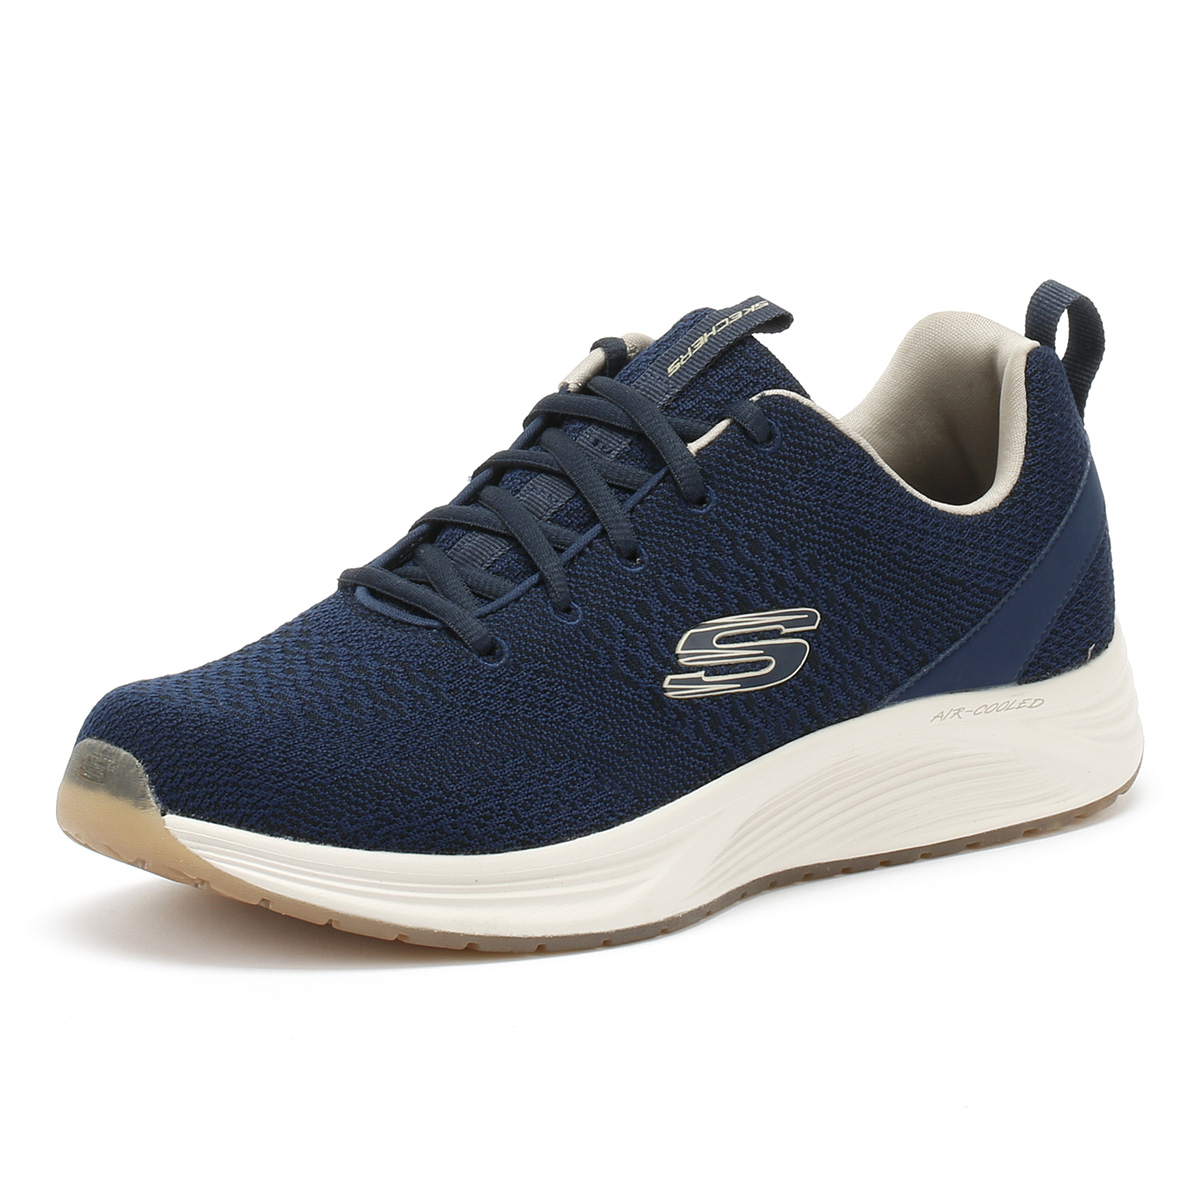 Skechers  Sport Uomo Trainers Navy Blau Skyline Lace Up Sport  Casual Running Schuhes b2b07f